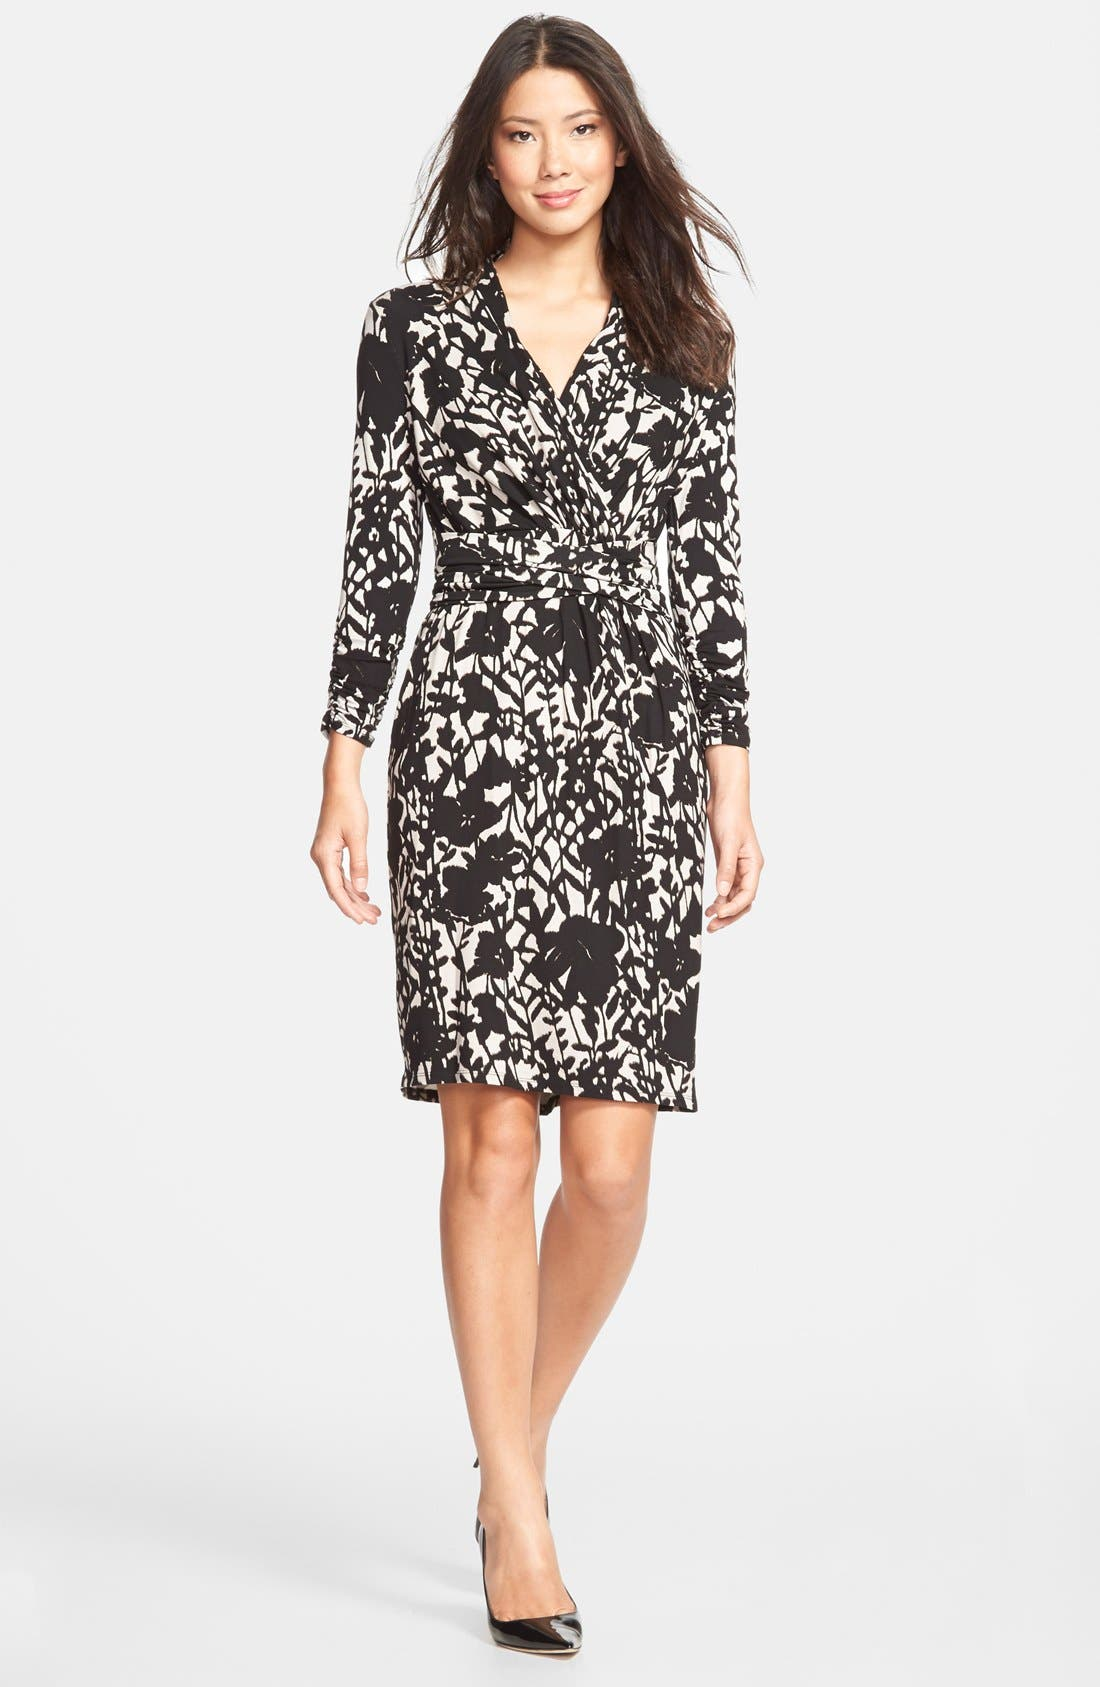 ADRIANNA PAPELL Floral Print Faux Wrap Dress, Main, color, 015